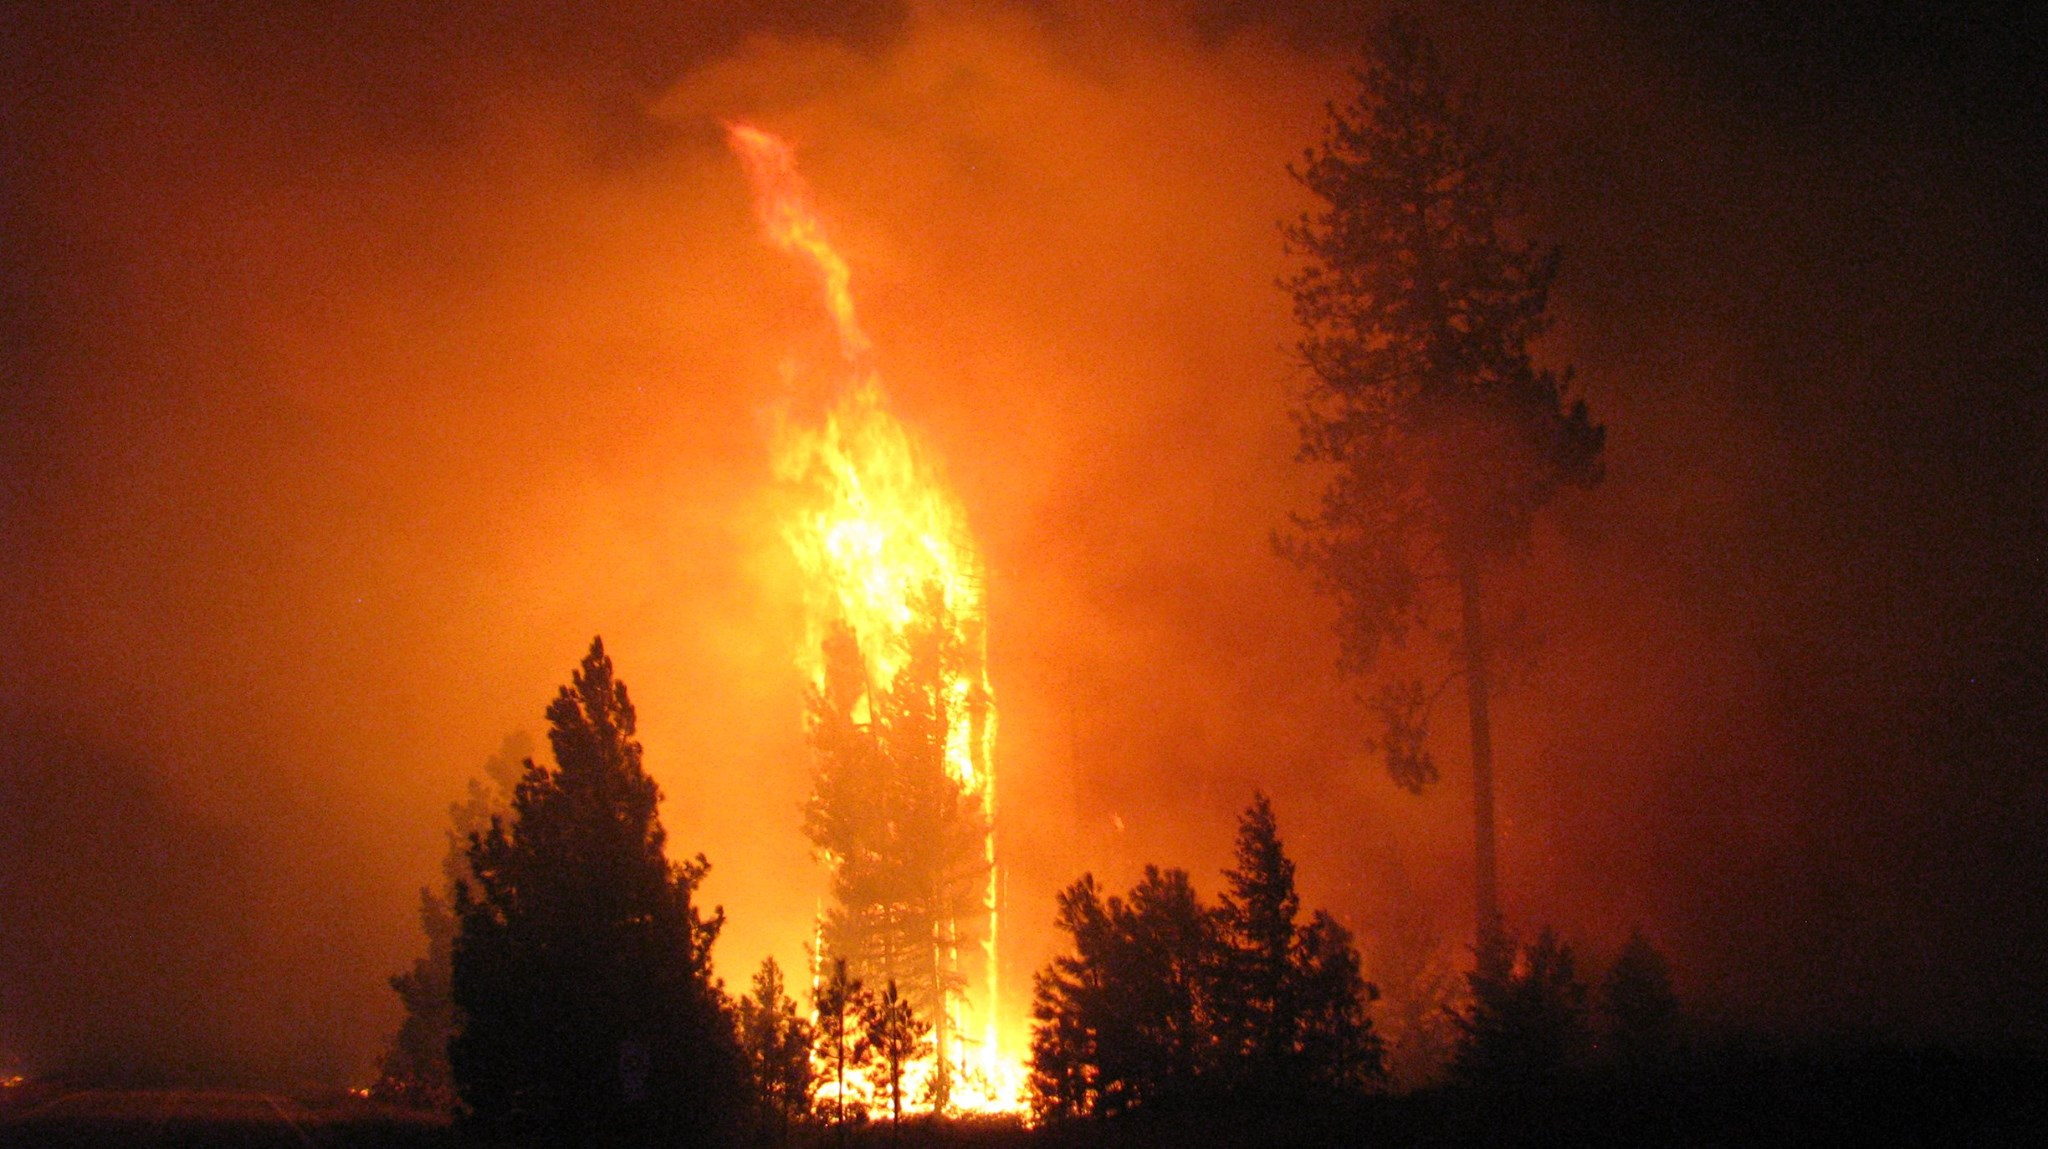 Spokane Tribe hit hard as blaze destroys homes on reservation